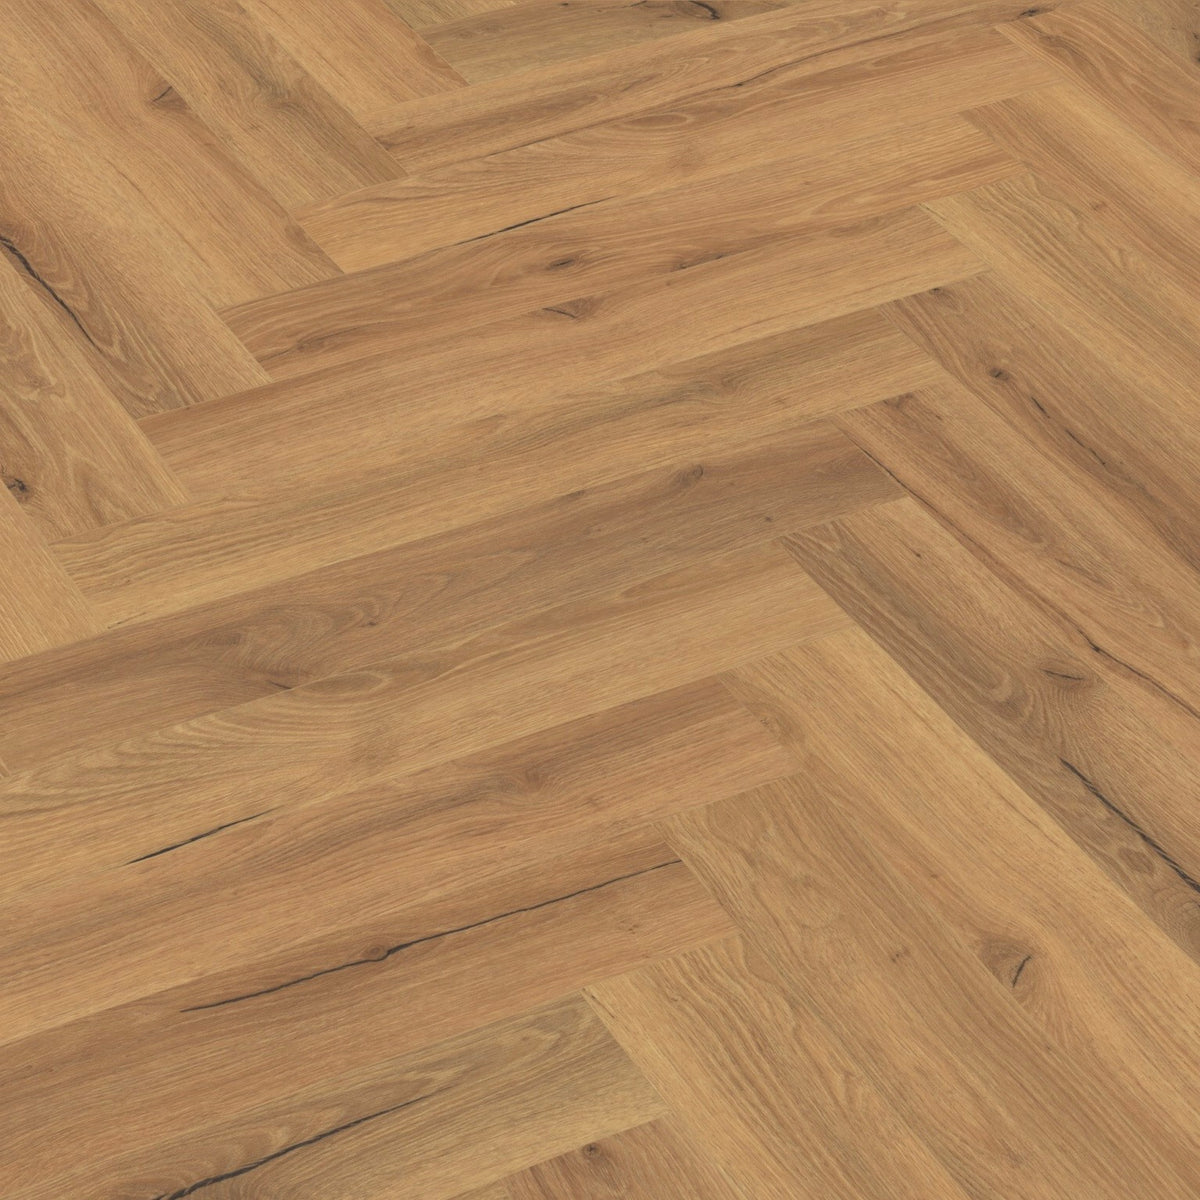 Ranch Oak Herringbone SPC